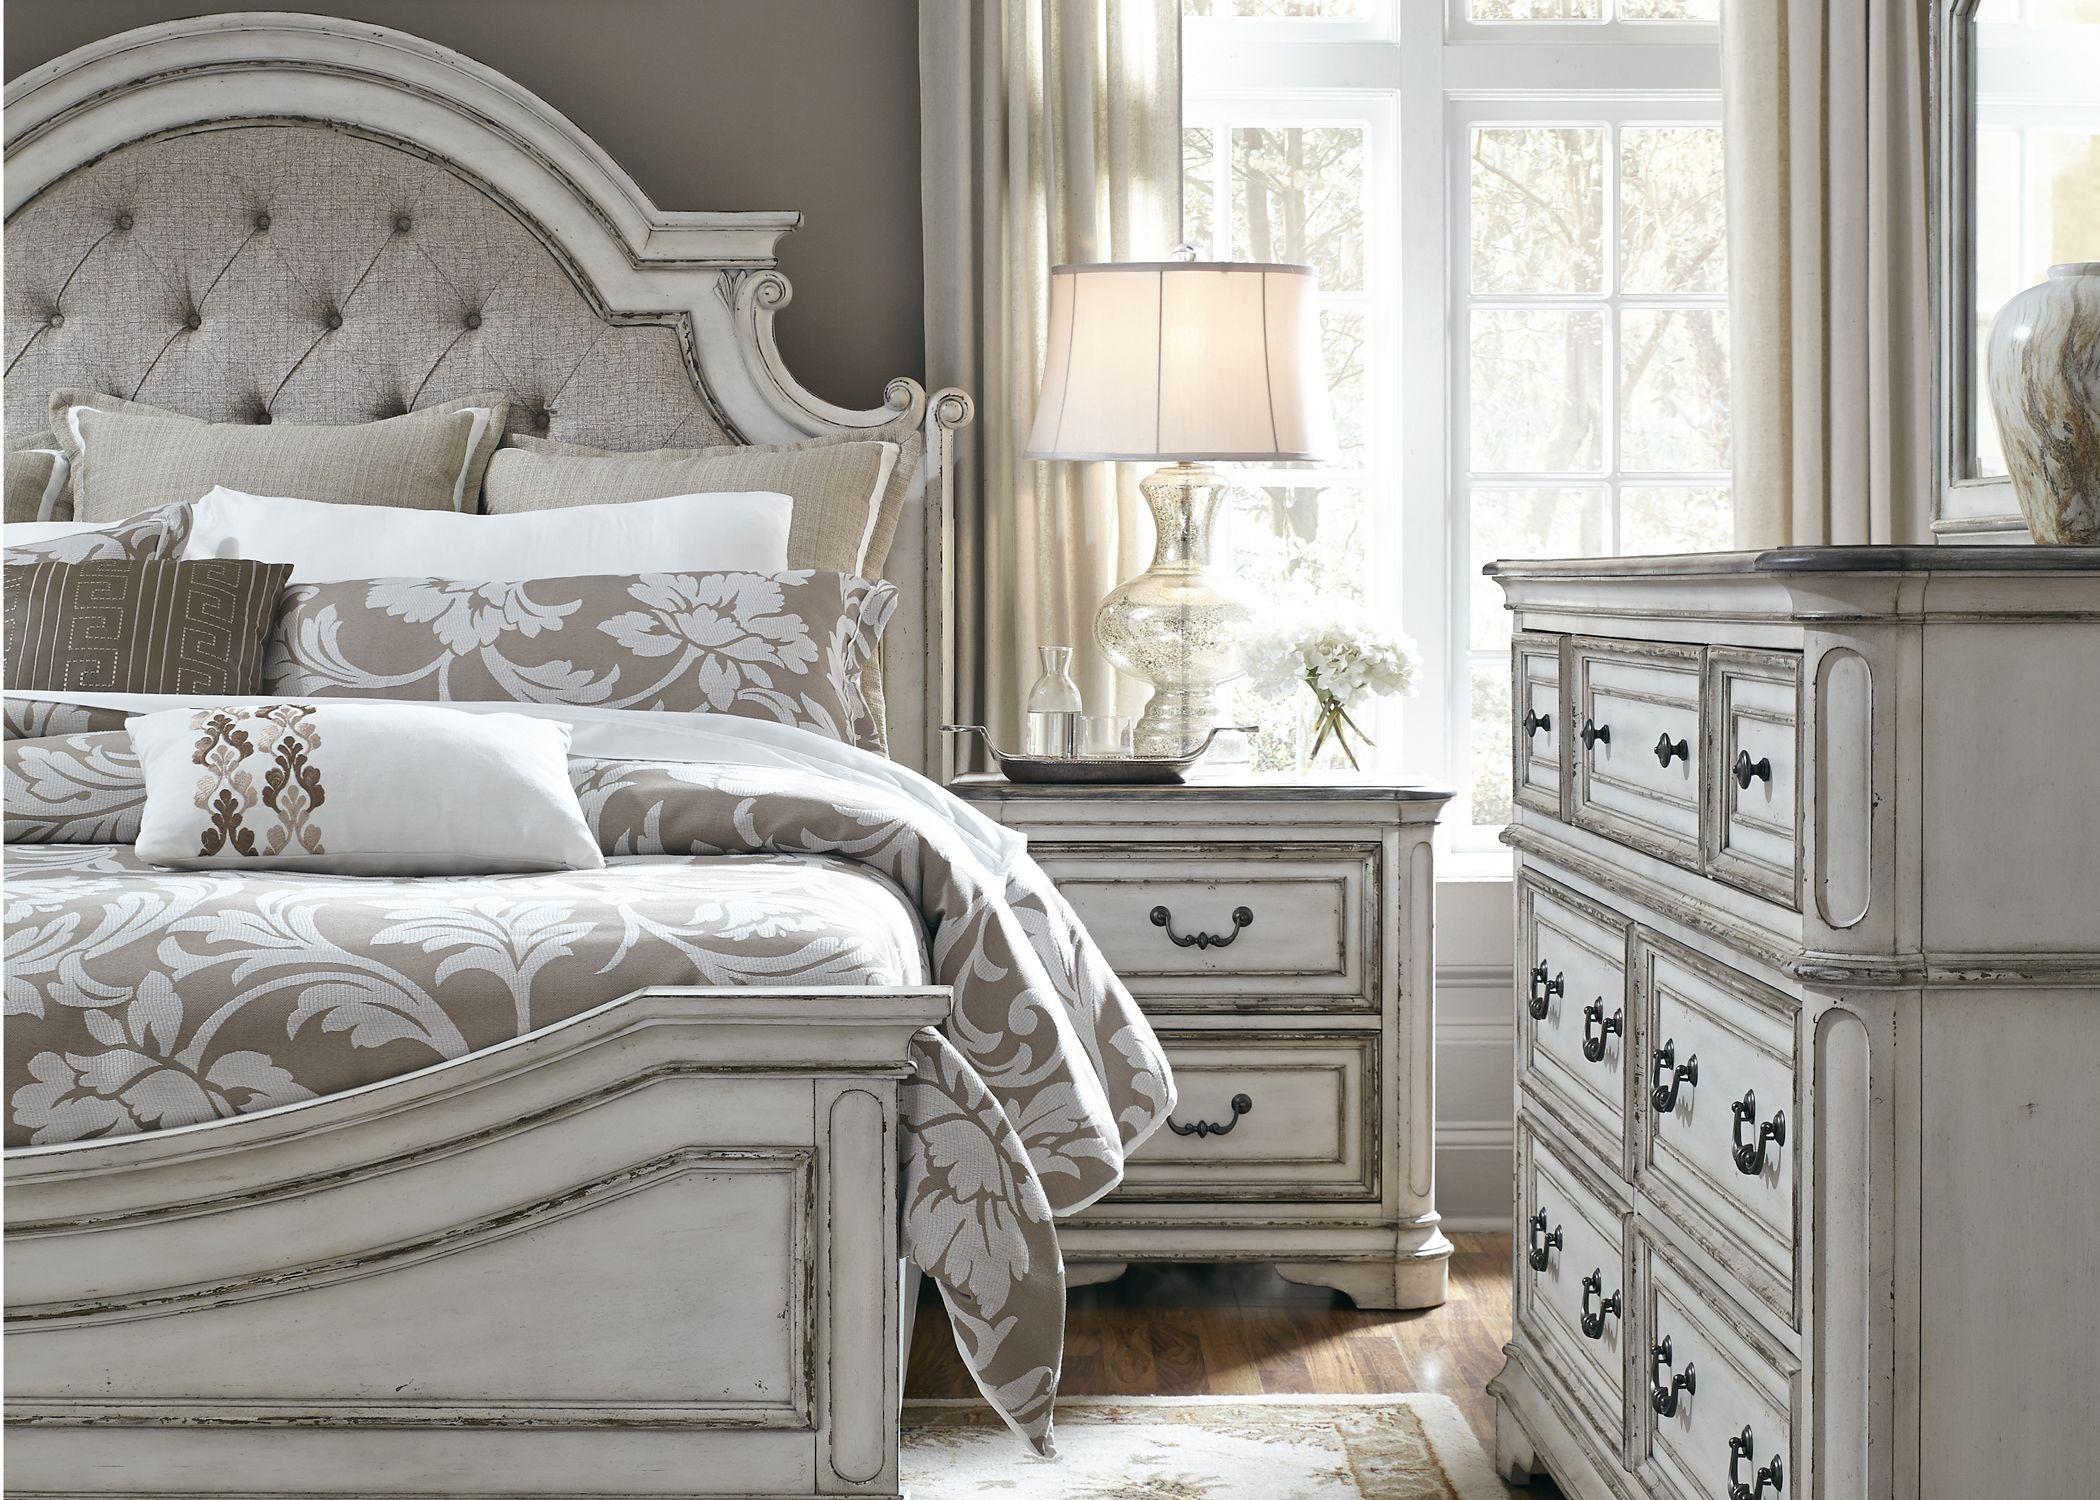 Magnolia Manor Antique White Upholstered Panel Bedroom Set 244 Br Qub Liberty New Home Ideas